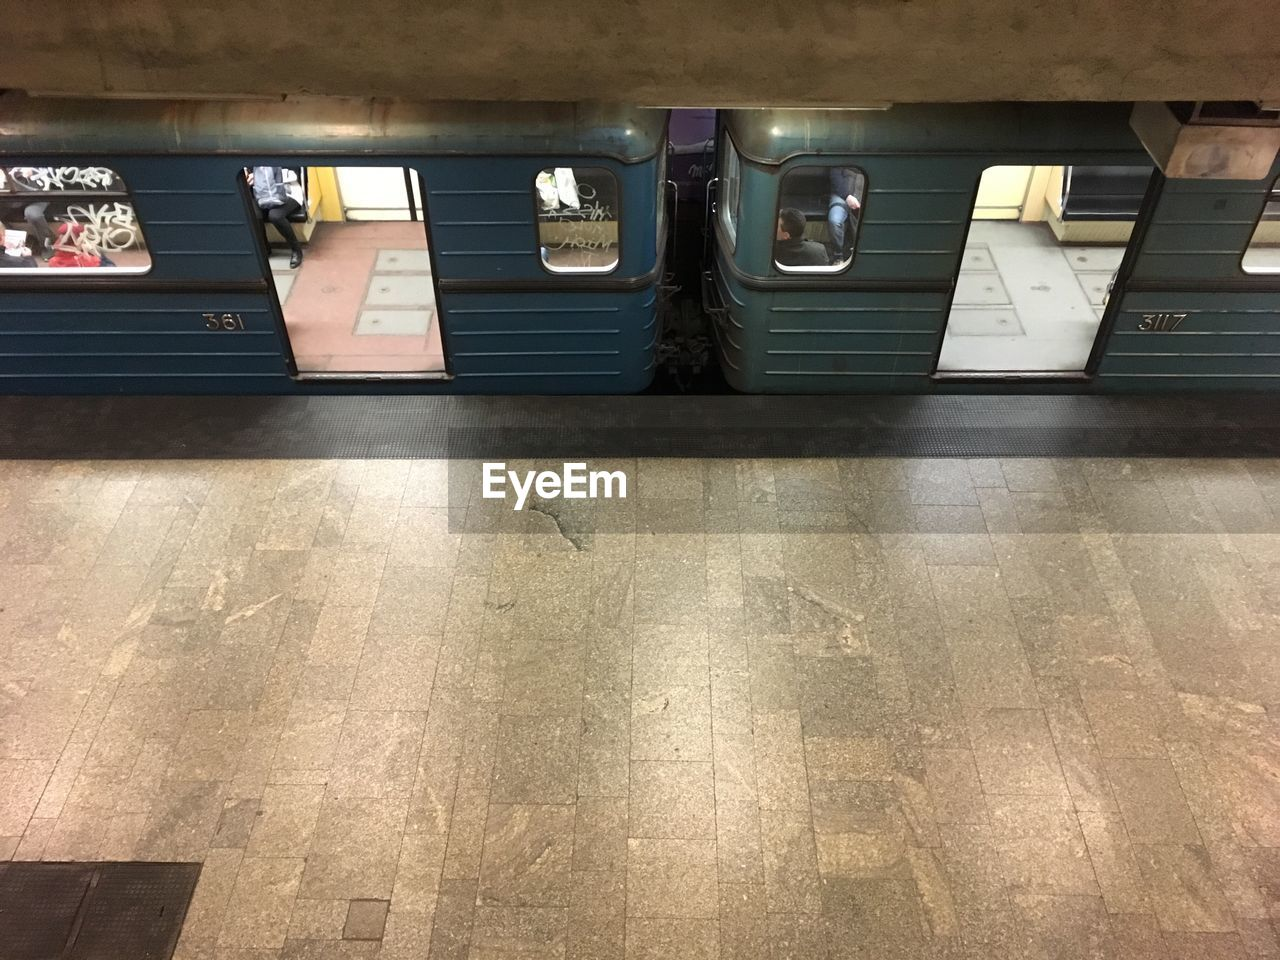 indoors, architecture, flooring, built structure, illuminated, no people, high angle view, public transportation, day, tile, lighting equipment, absence, railroad station, sunlight, rail transportation, subway, transportation, tiled floor, architectural column, ceiling